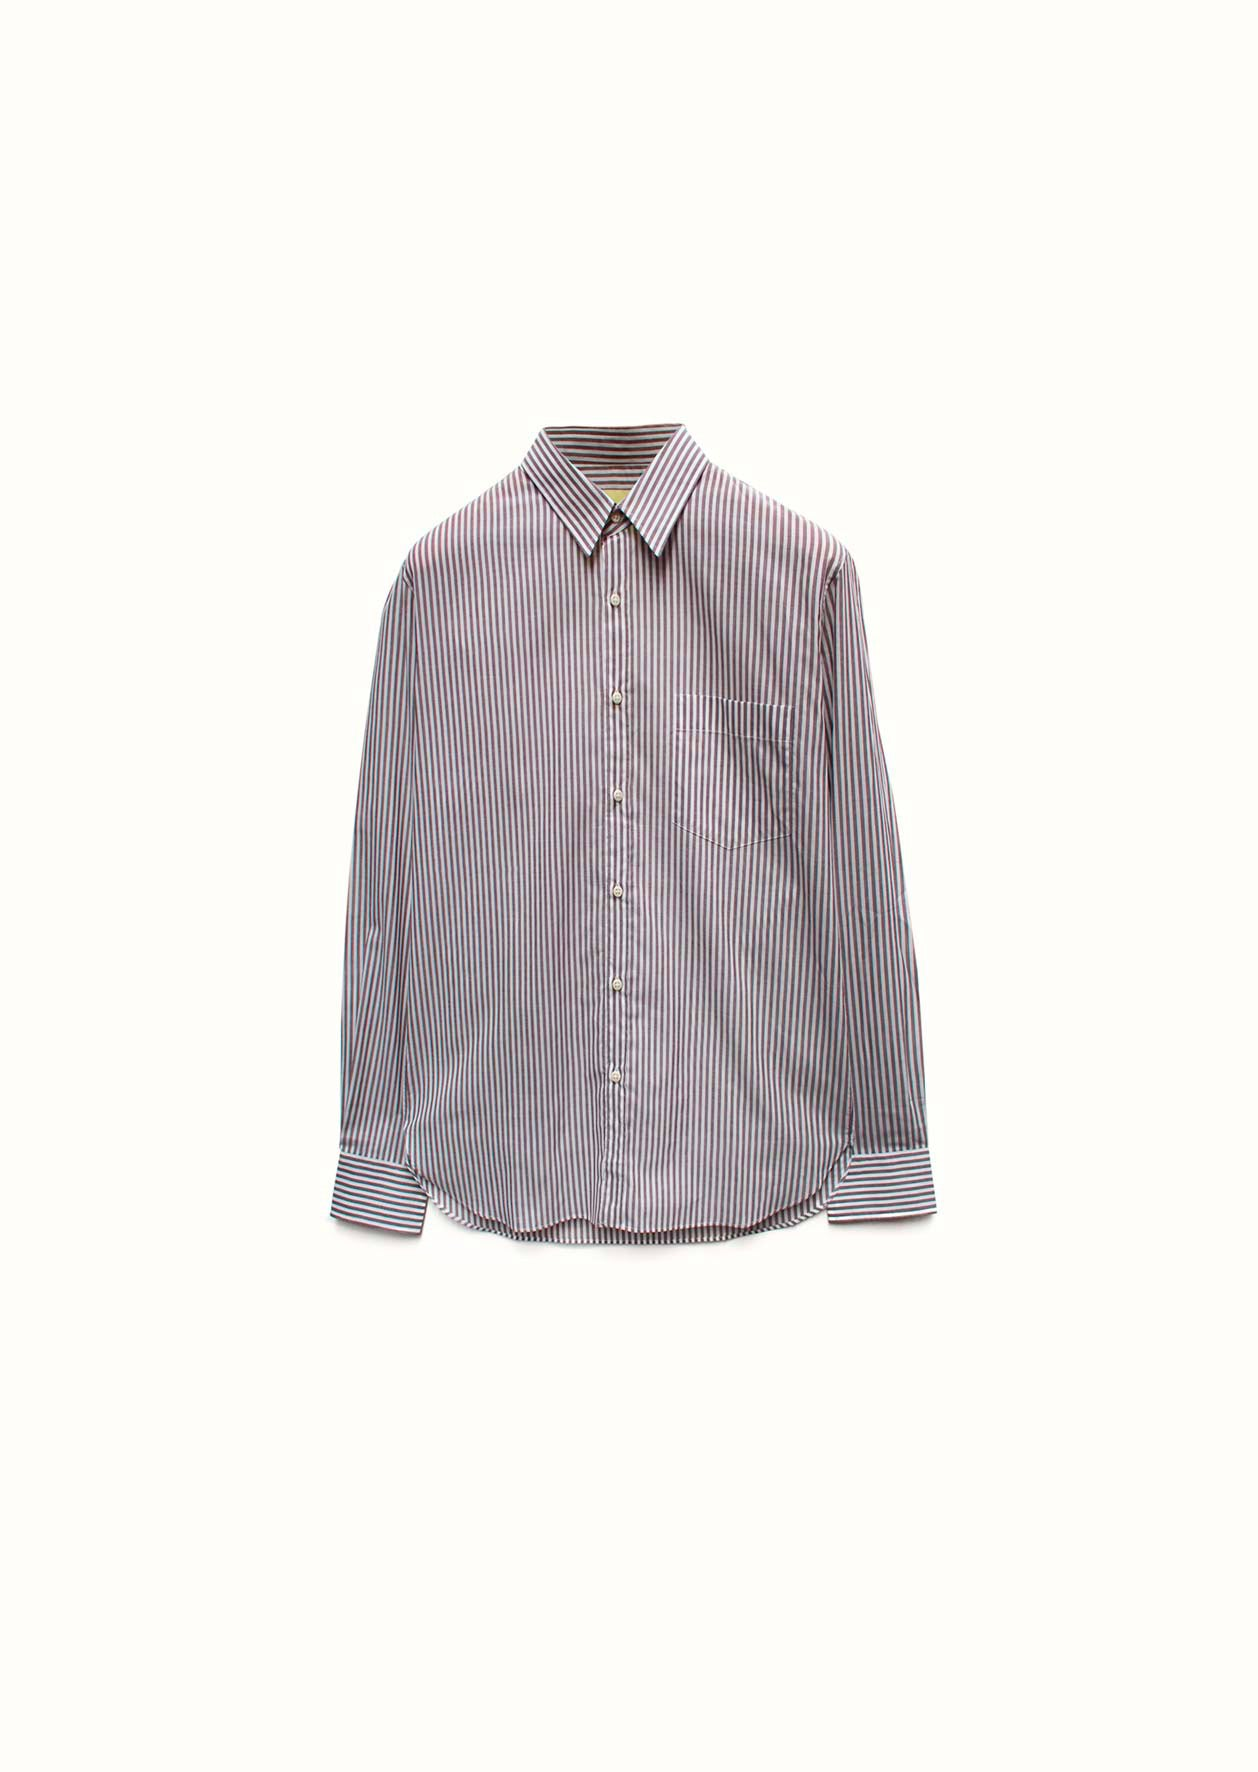 Essential shirt - Japanese cotton voile - Brown stripes